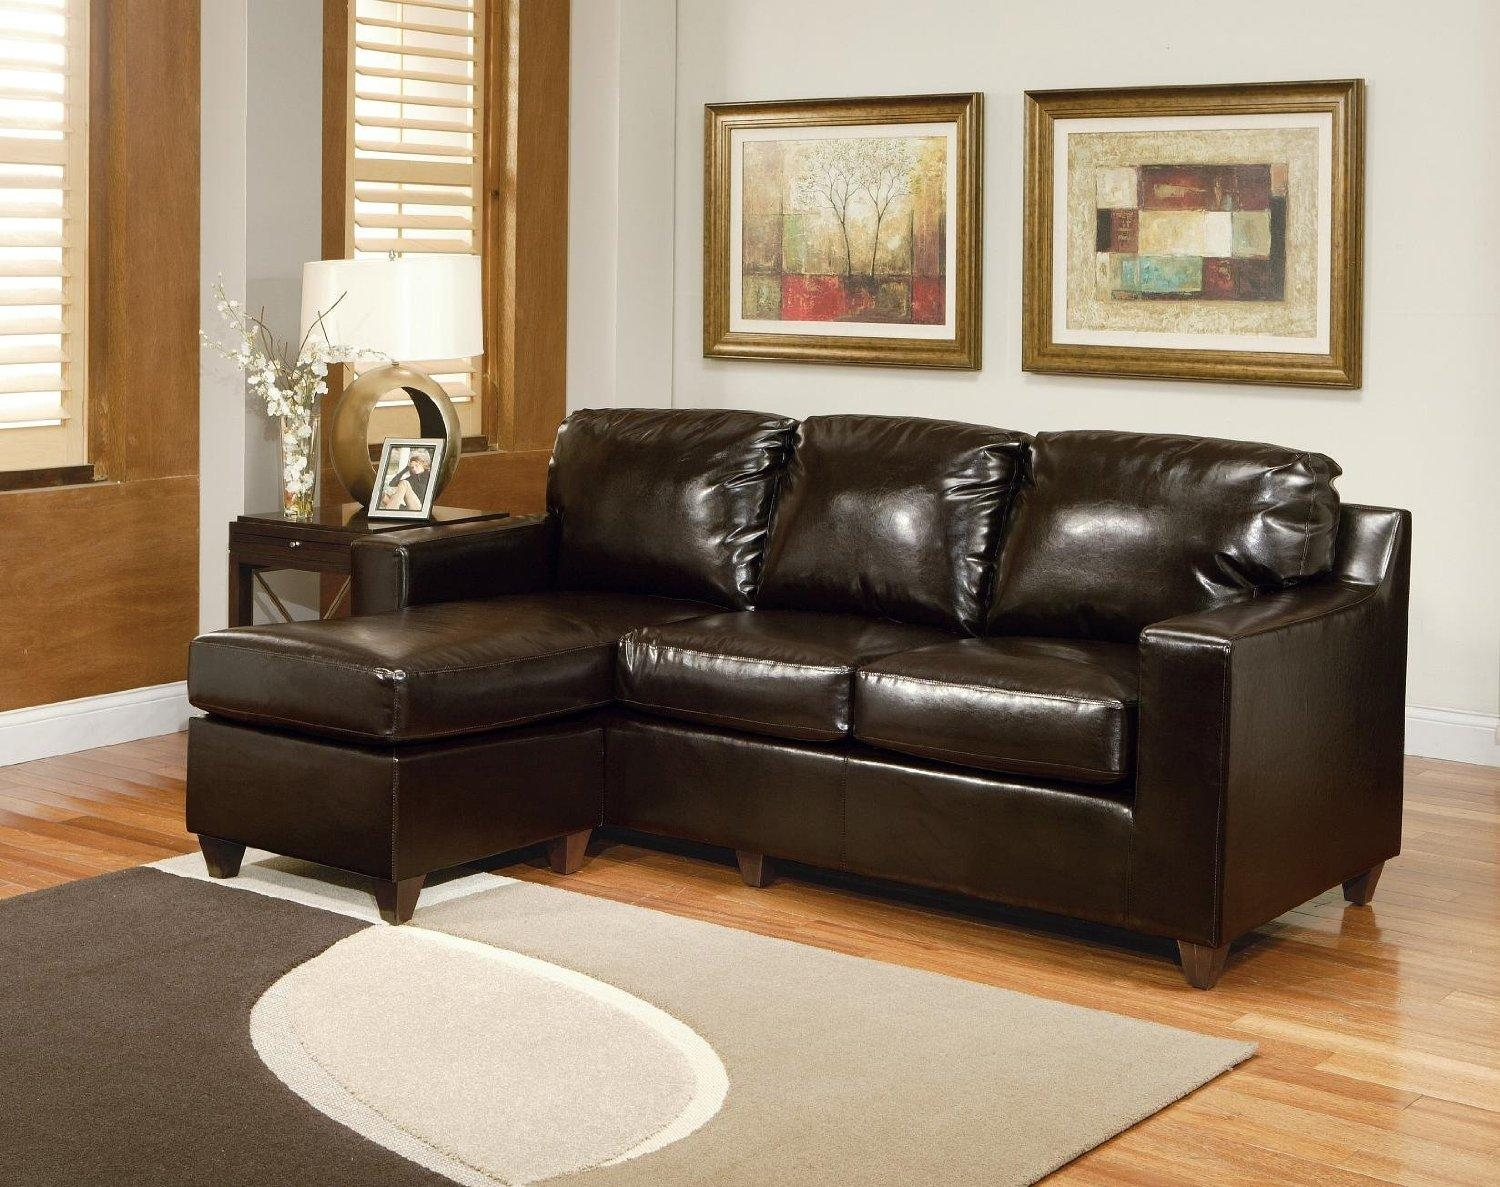 Sectional Sofa For Small Spaces (View 16 of 20)